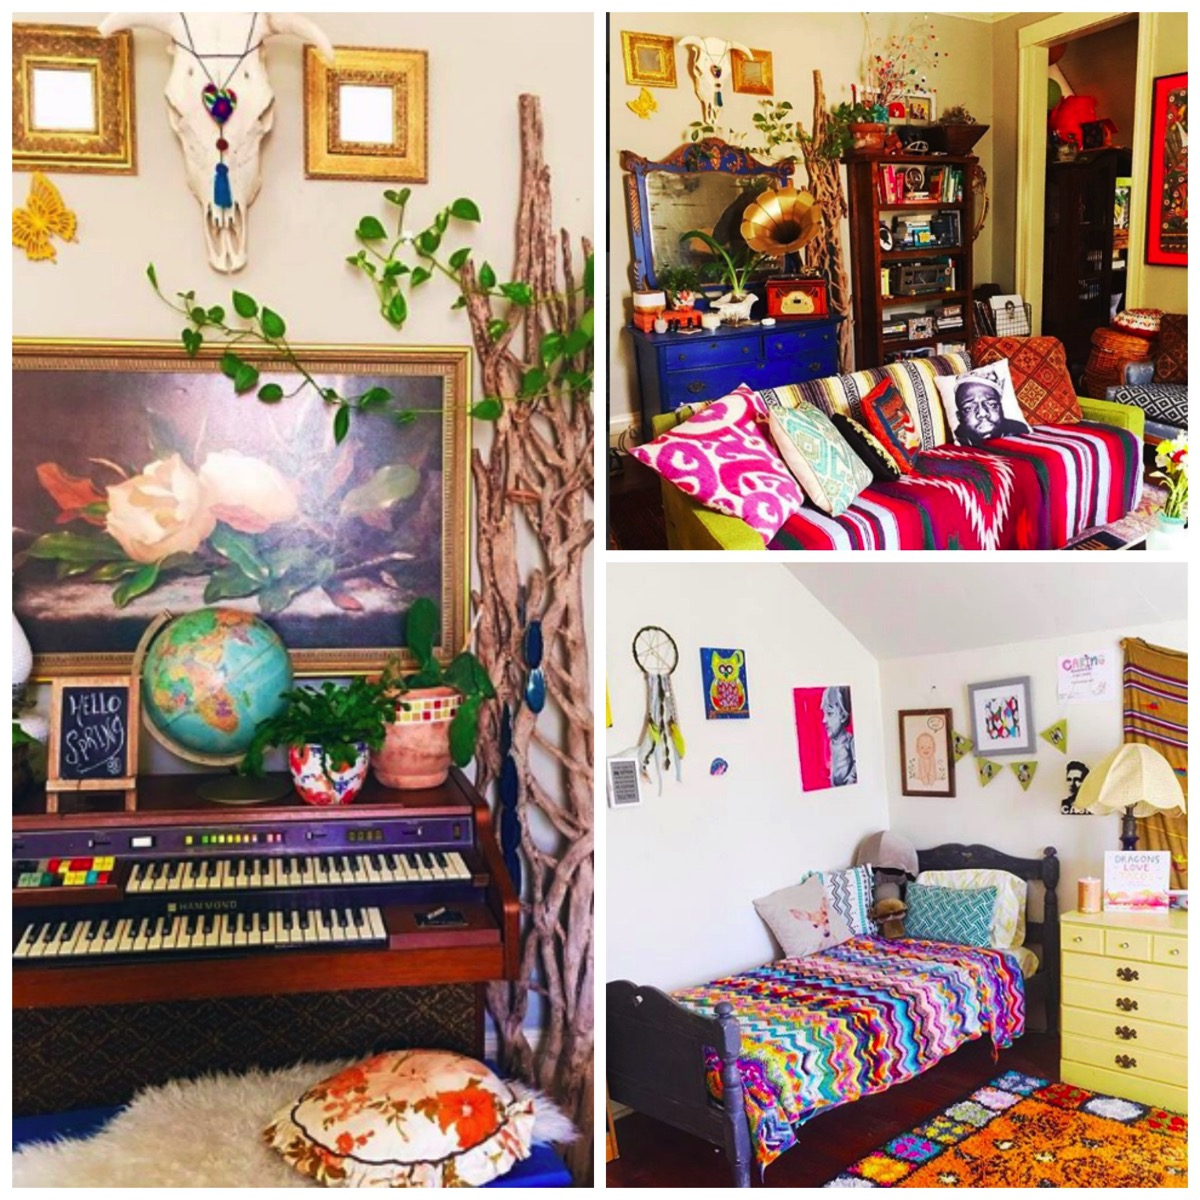 Thrifty Hippie colorful boho home decor vintage